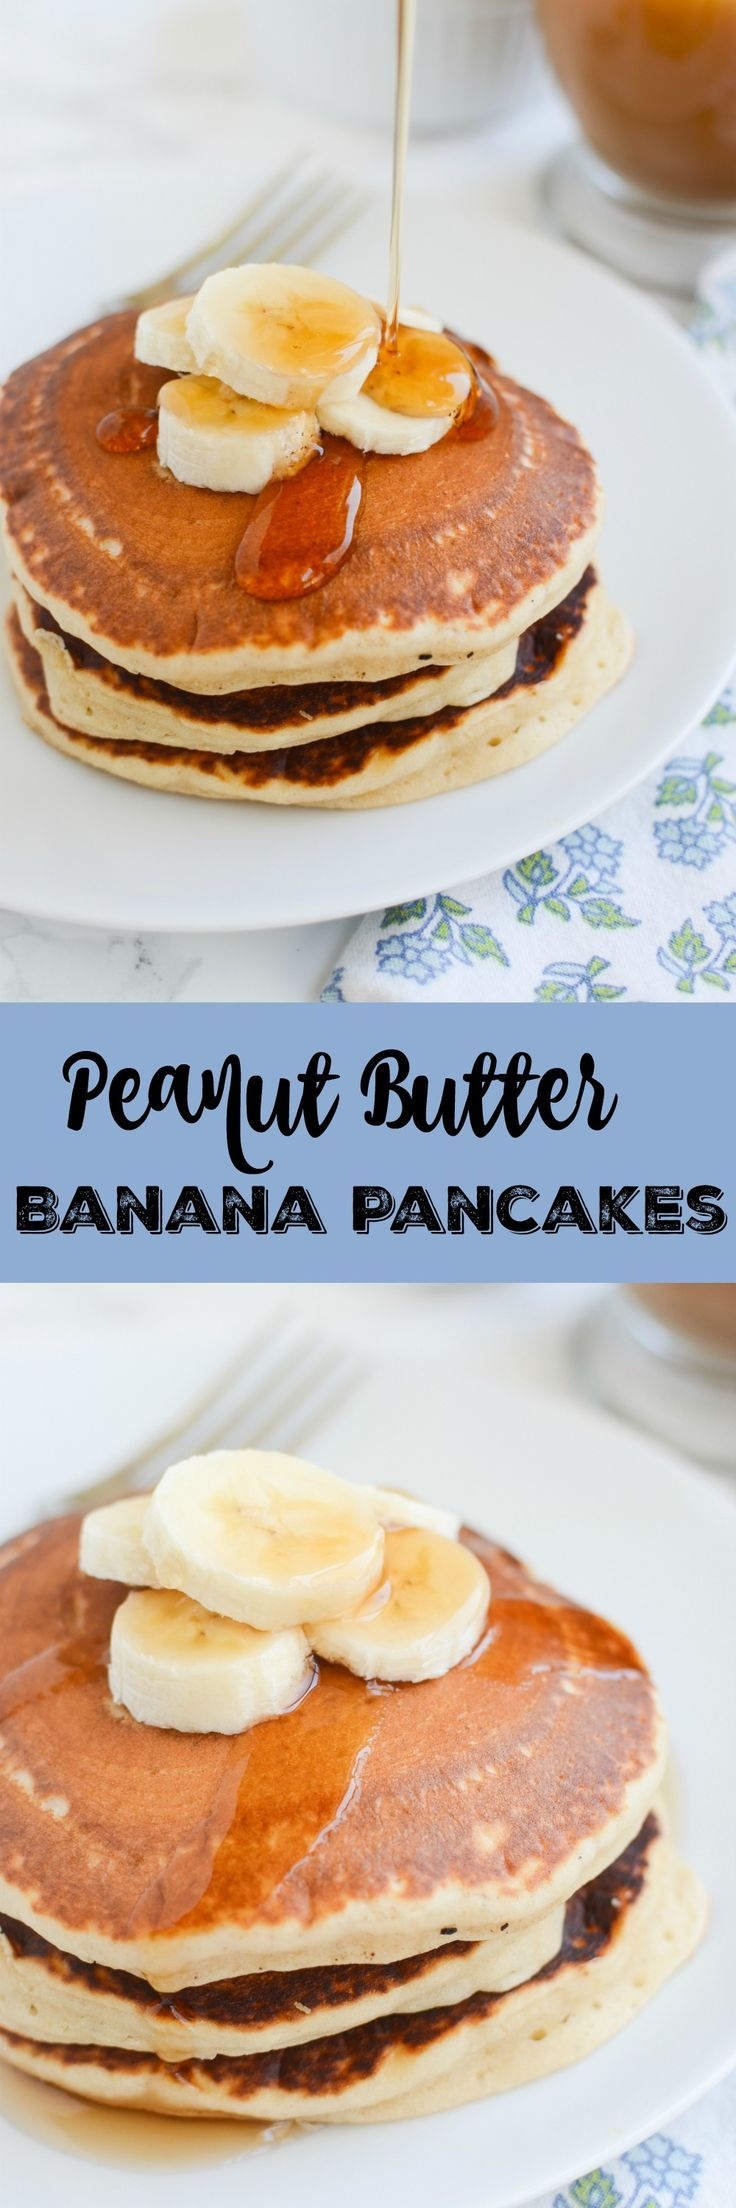 Peanut Butter Banana Pancakes - the most delicious pancakes recipe! Perfect for a relaxing weekend morning or breakfast for dinner!